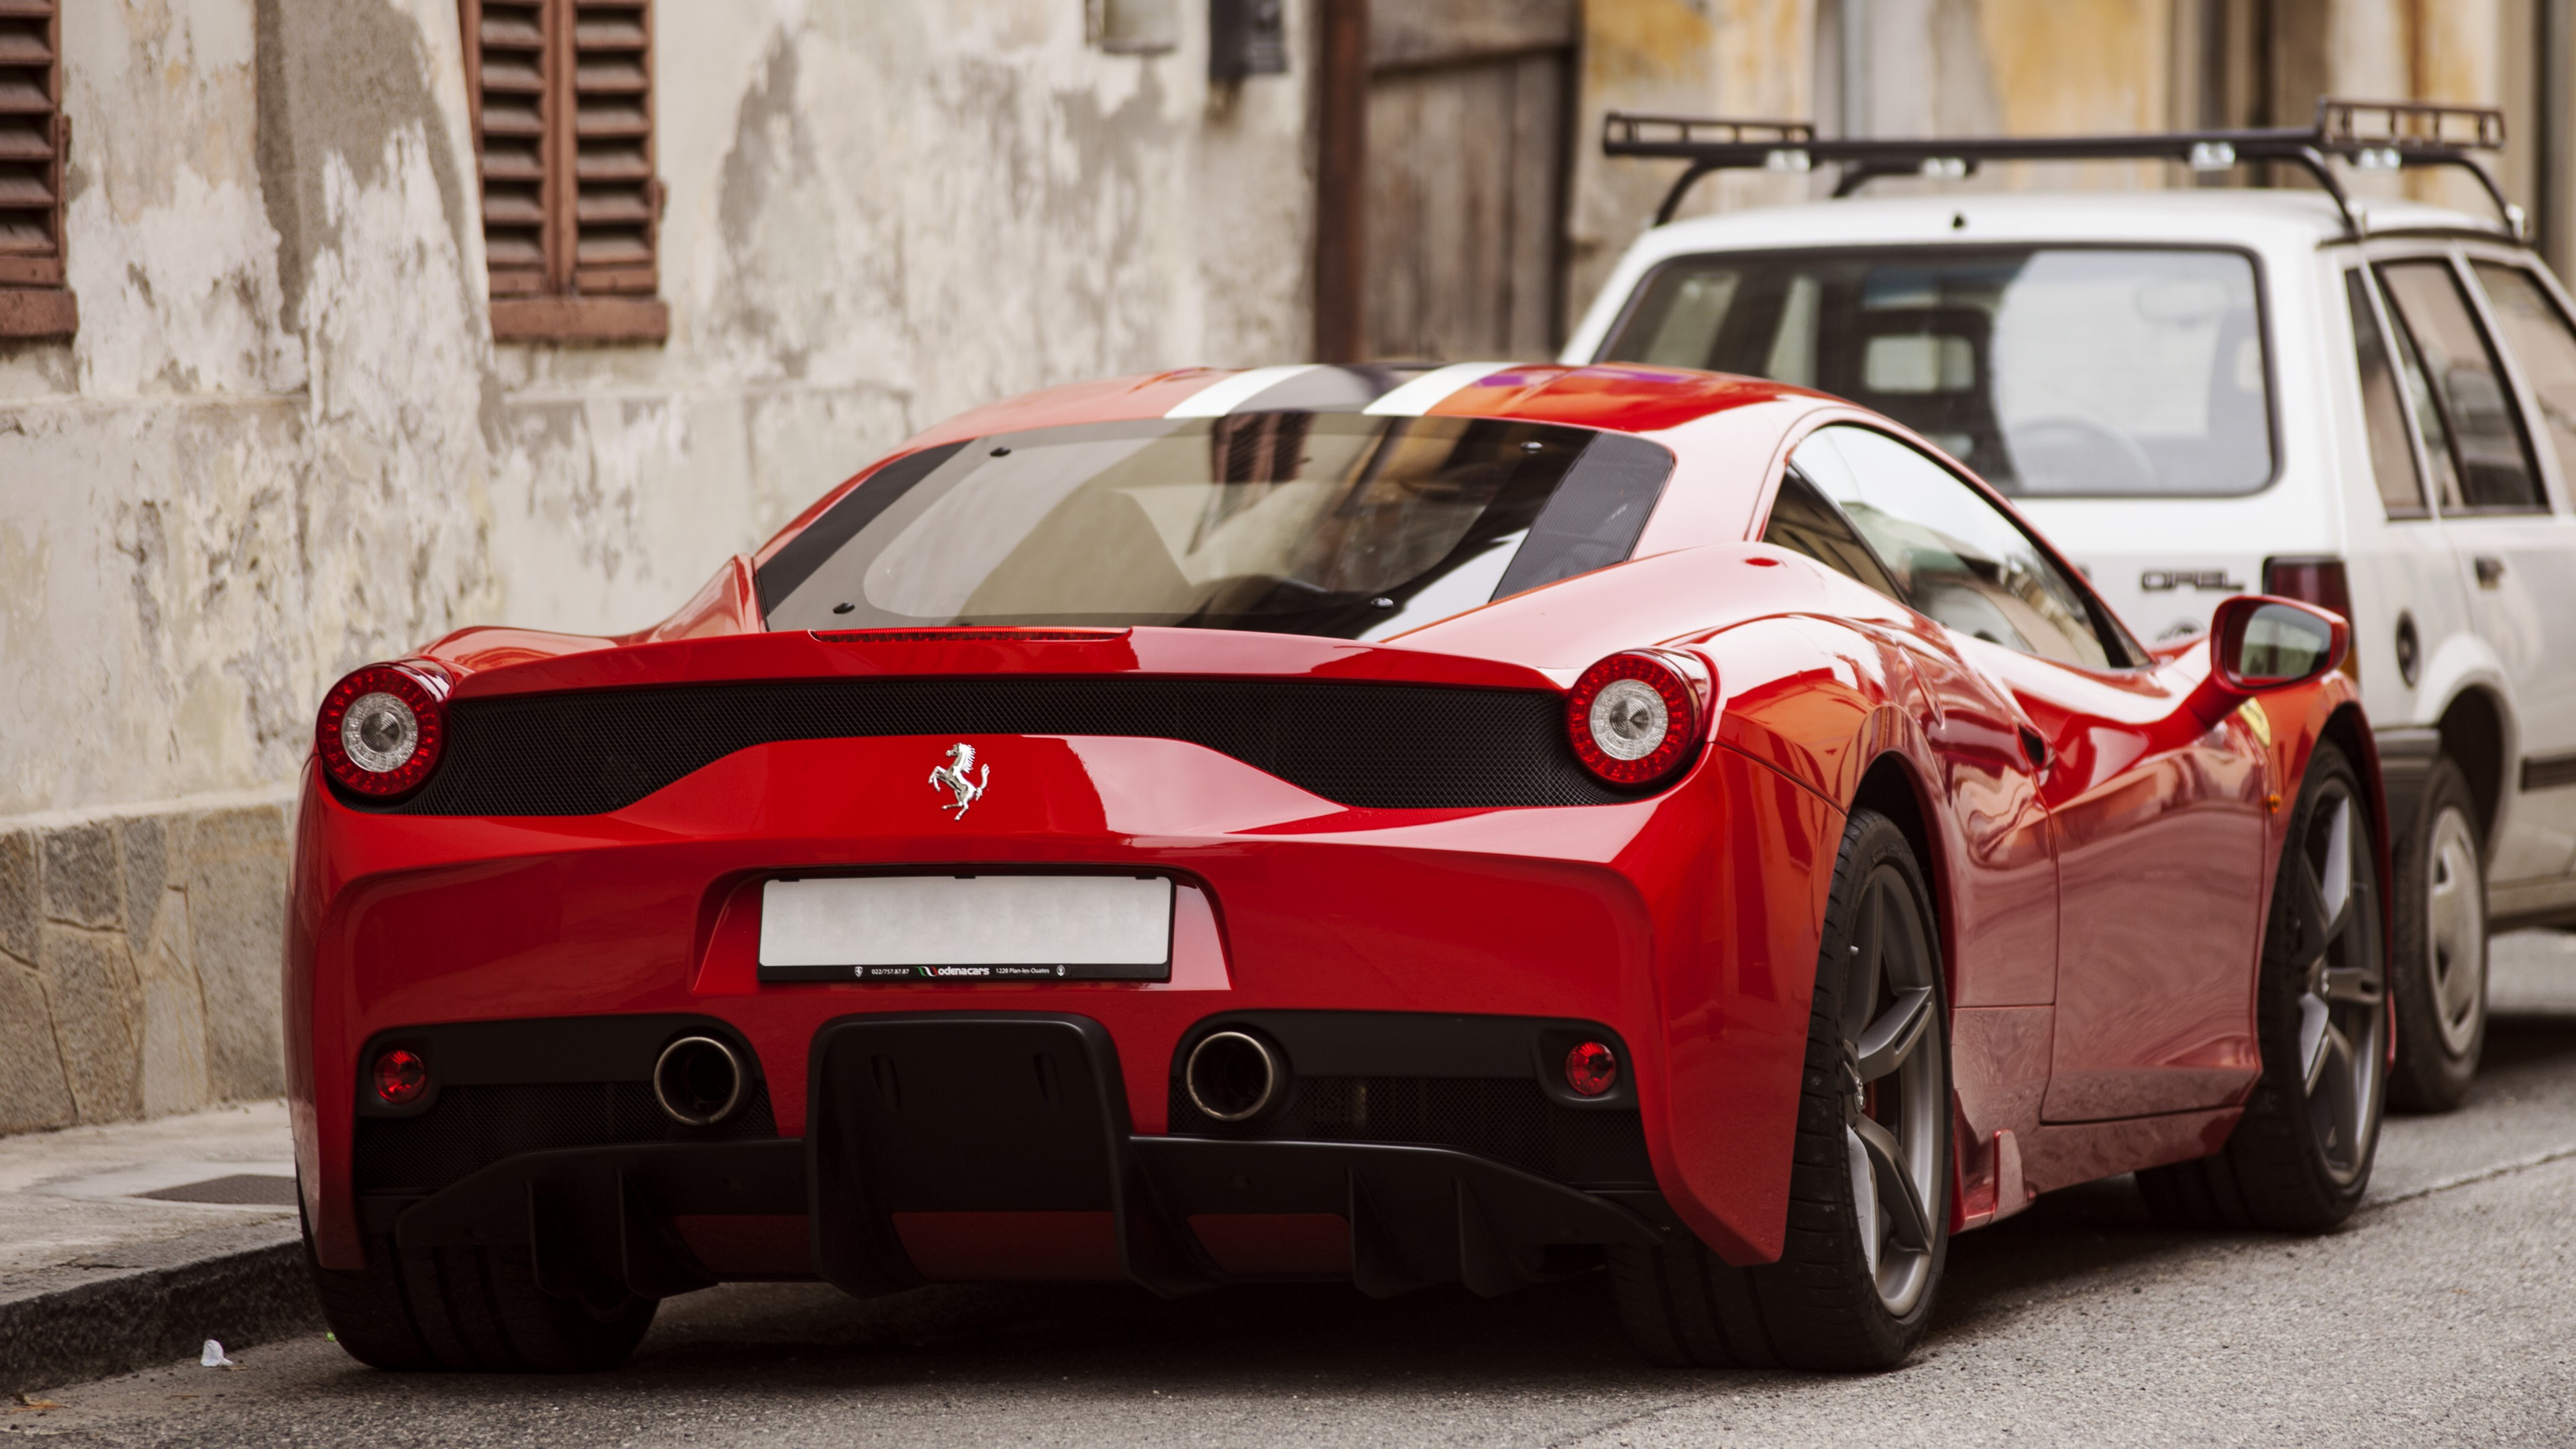 Project Cars Wallpaper Red Wallpaper Ferrari 458 Speciale Supercar Back View Red